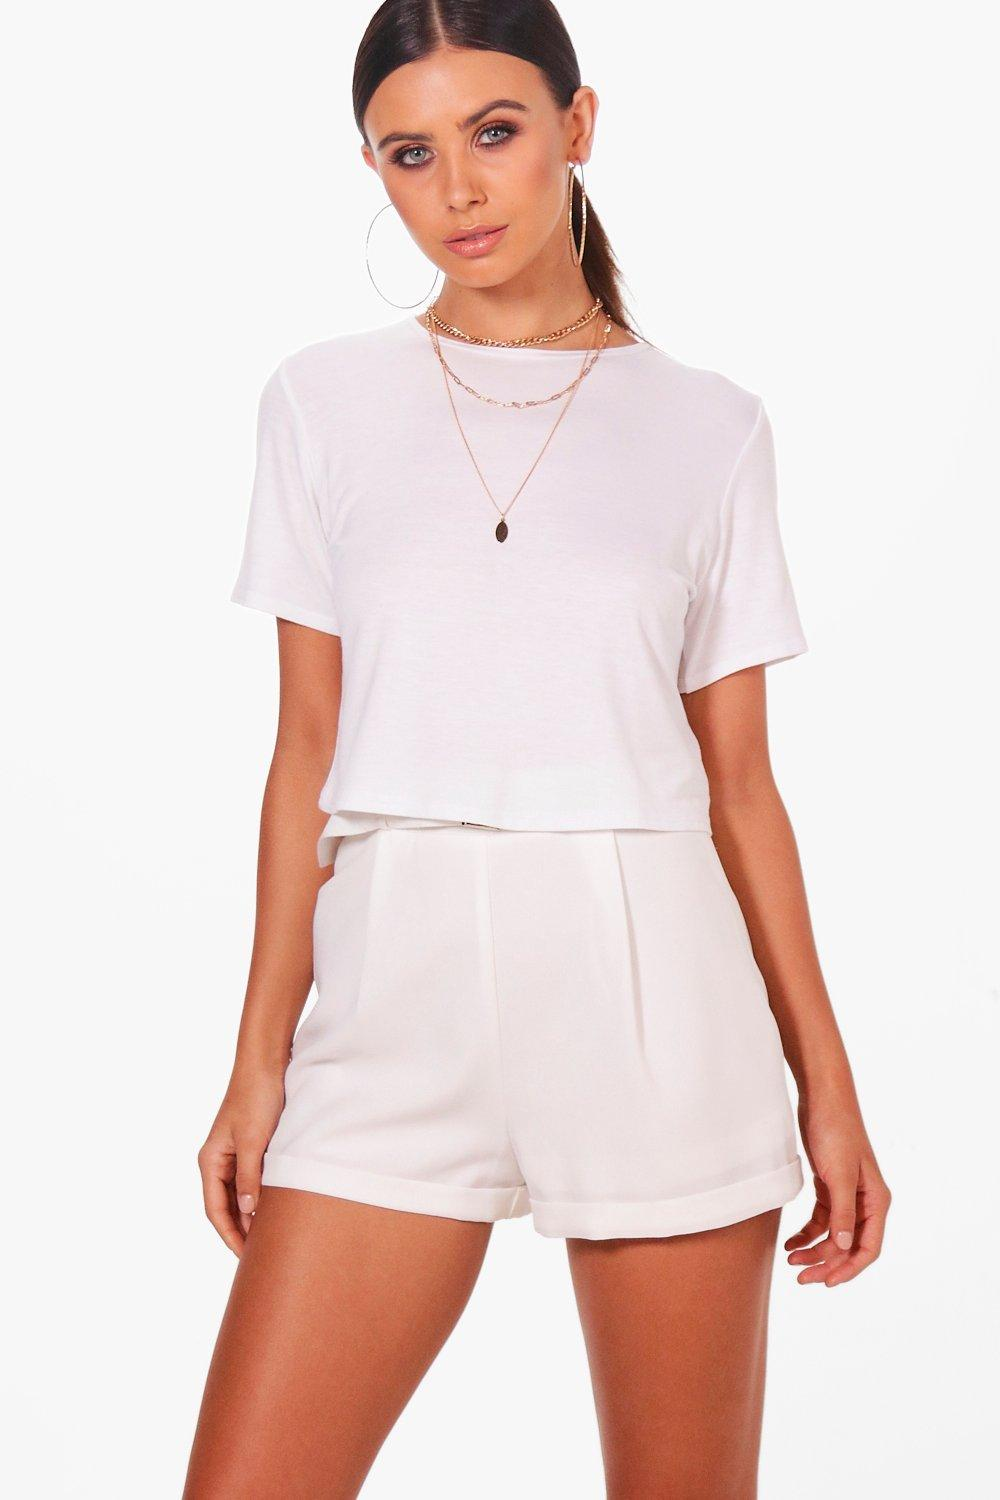 Womens Petite Basic Cropped T-Shirt - white - 40, White - Boohoo.com